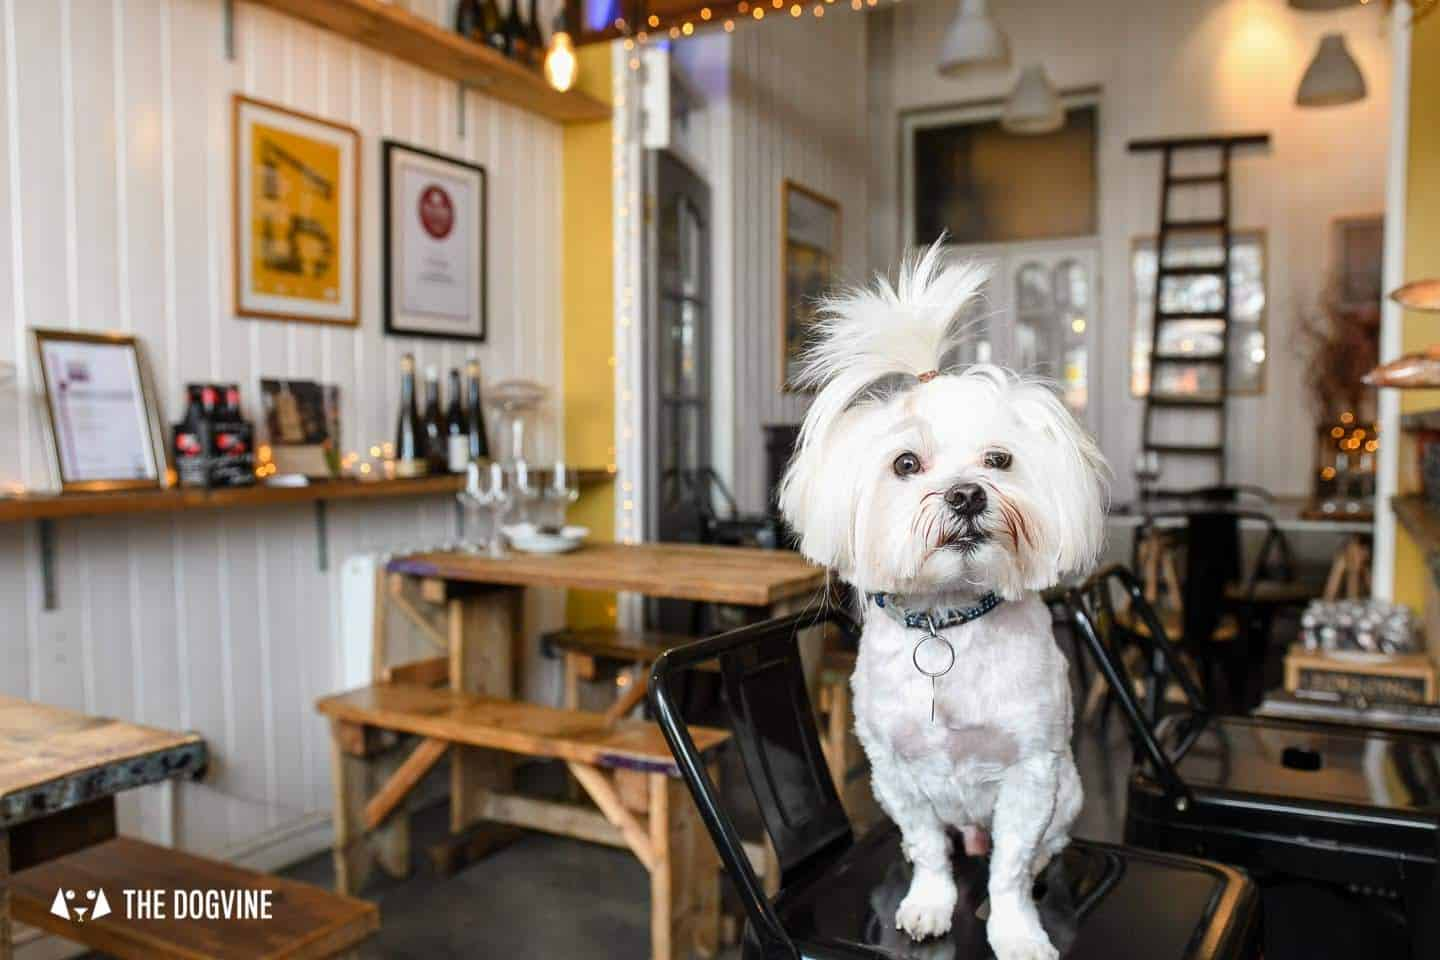 The Best of Dog-friendly St Johns by Milo the Maltese - L'Oculto 3